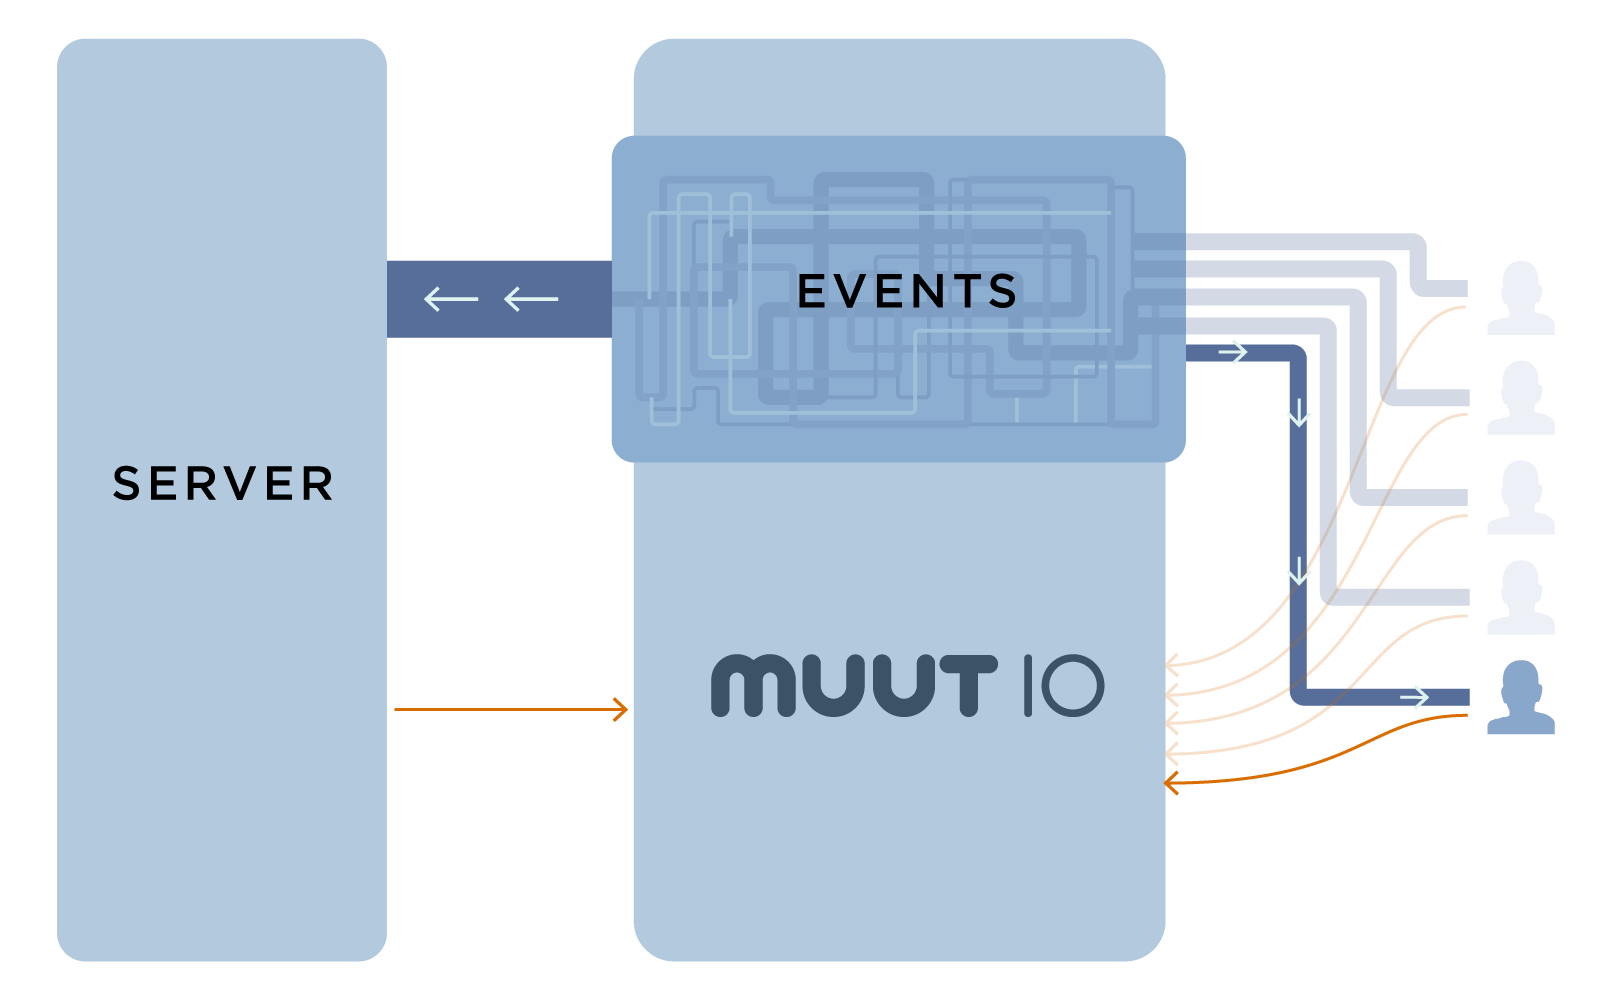 Muut IO Diagram